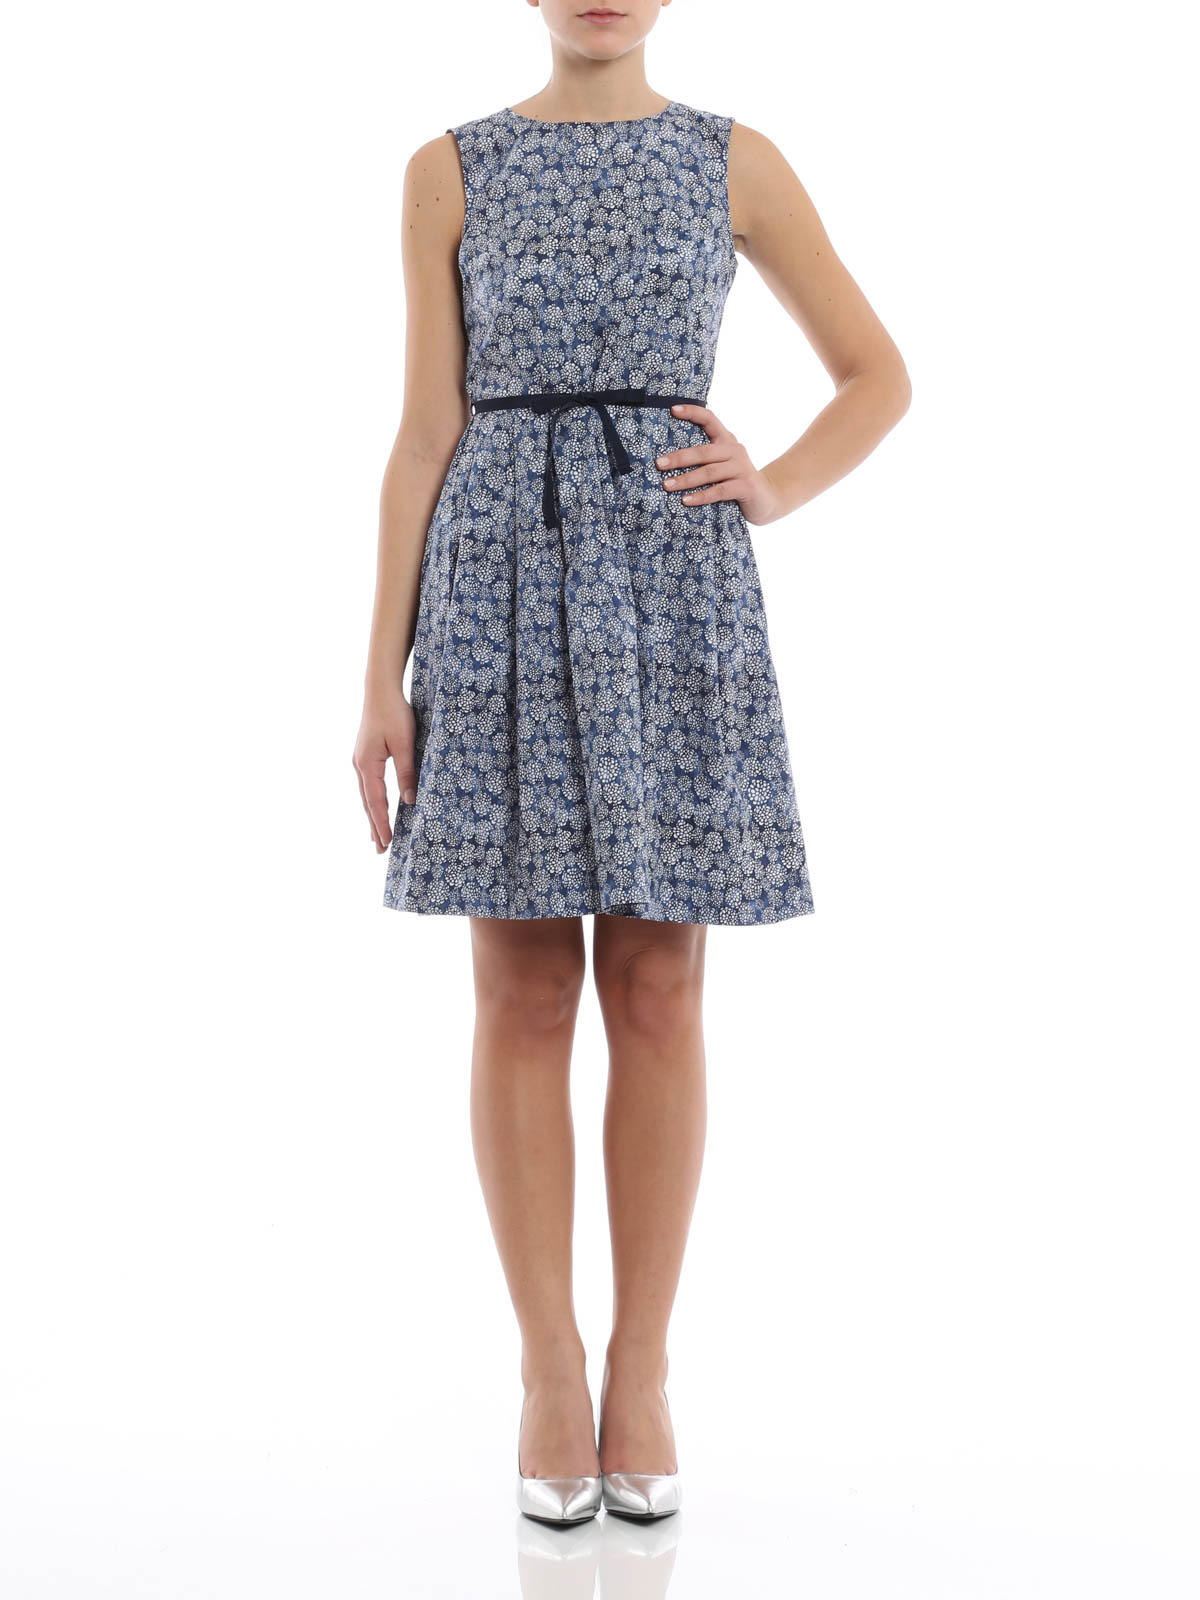 Floral Print Cotton Dress By Woolrich Short Dresses Ikrix